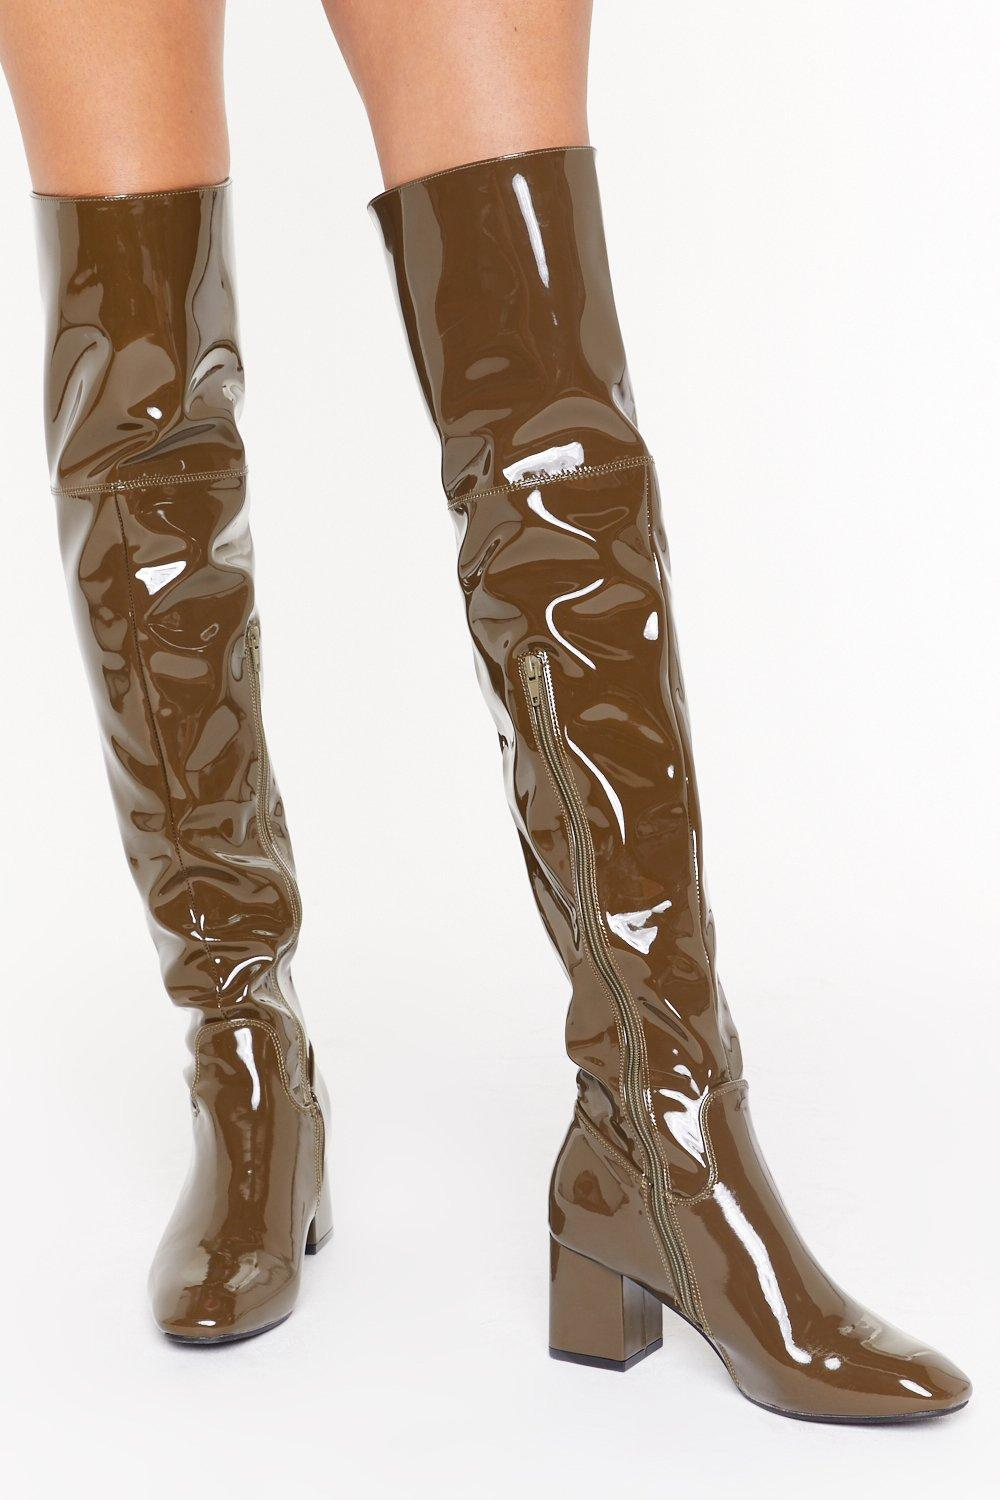 Thigh High Patent Leather Boots